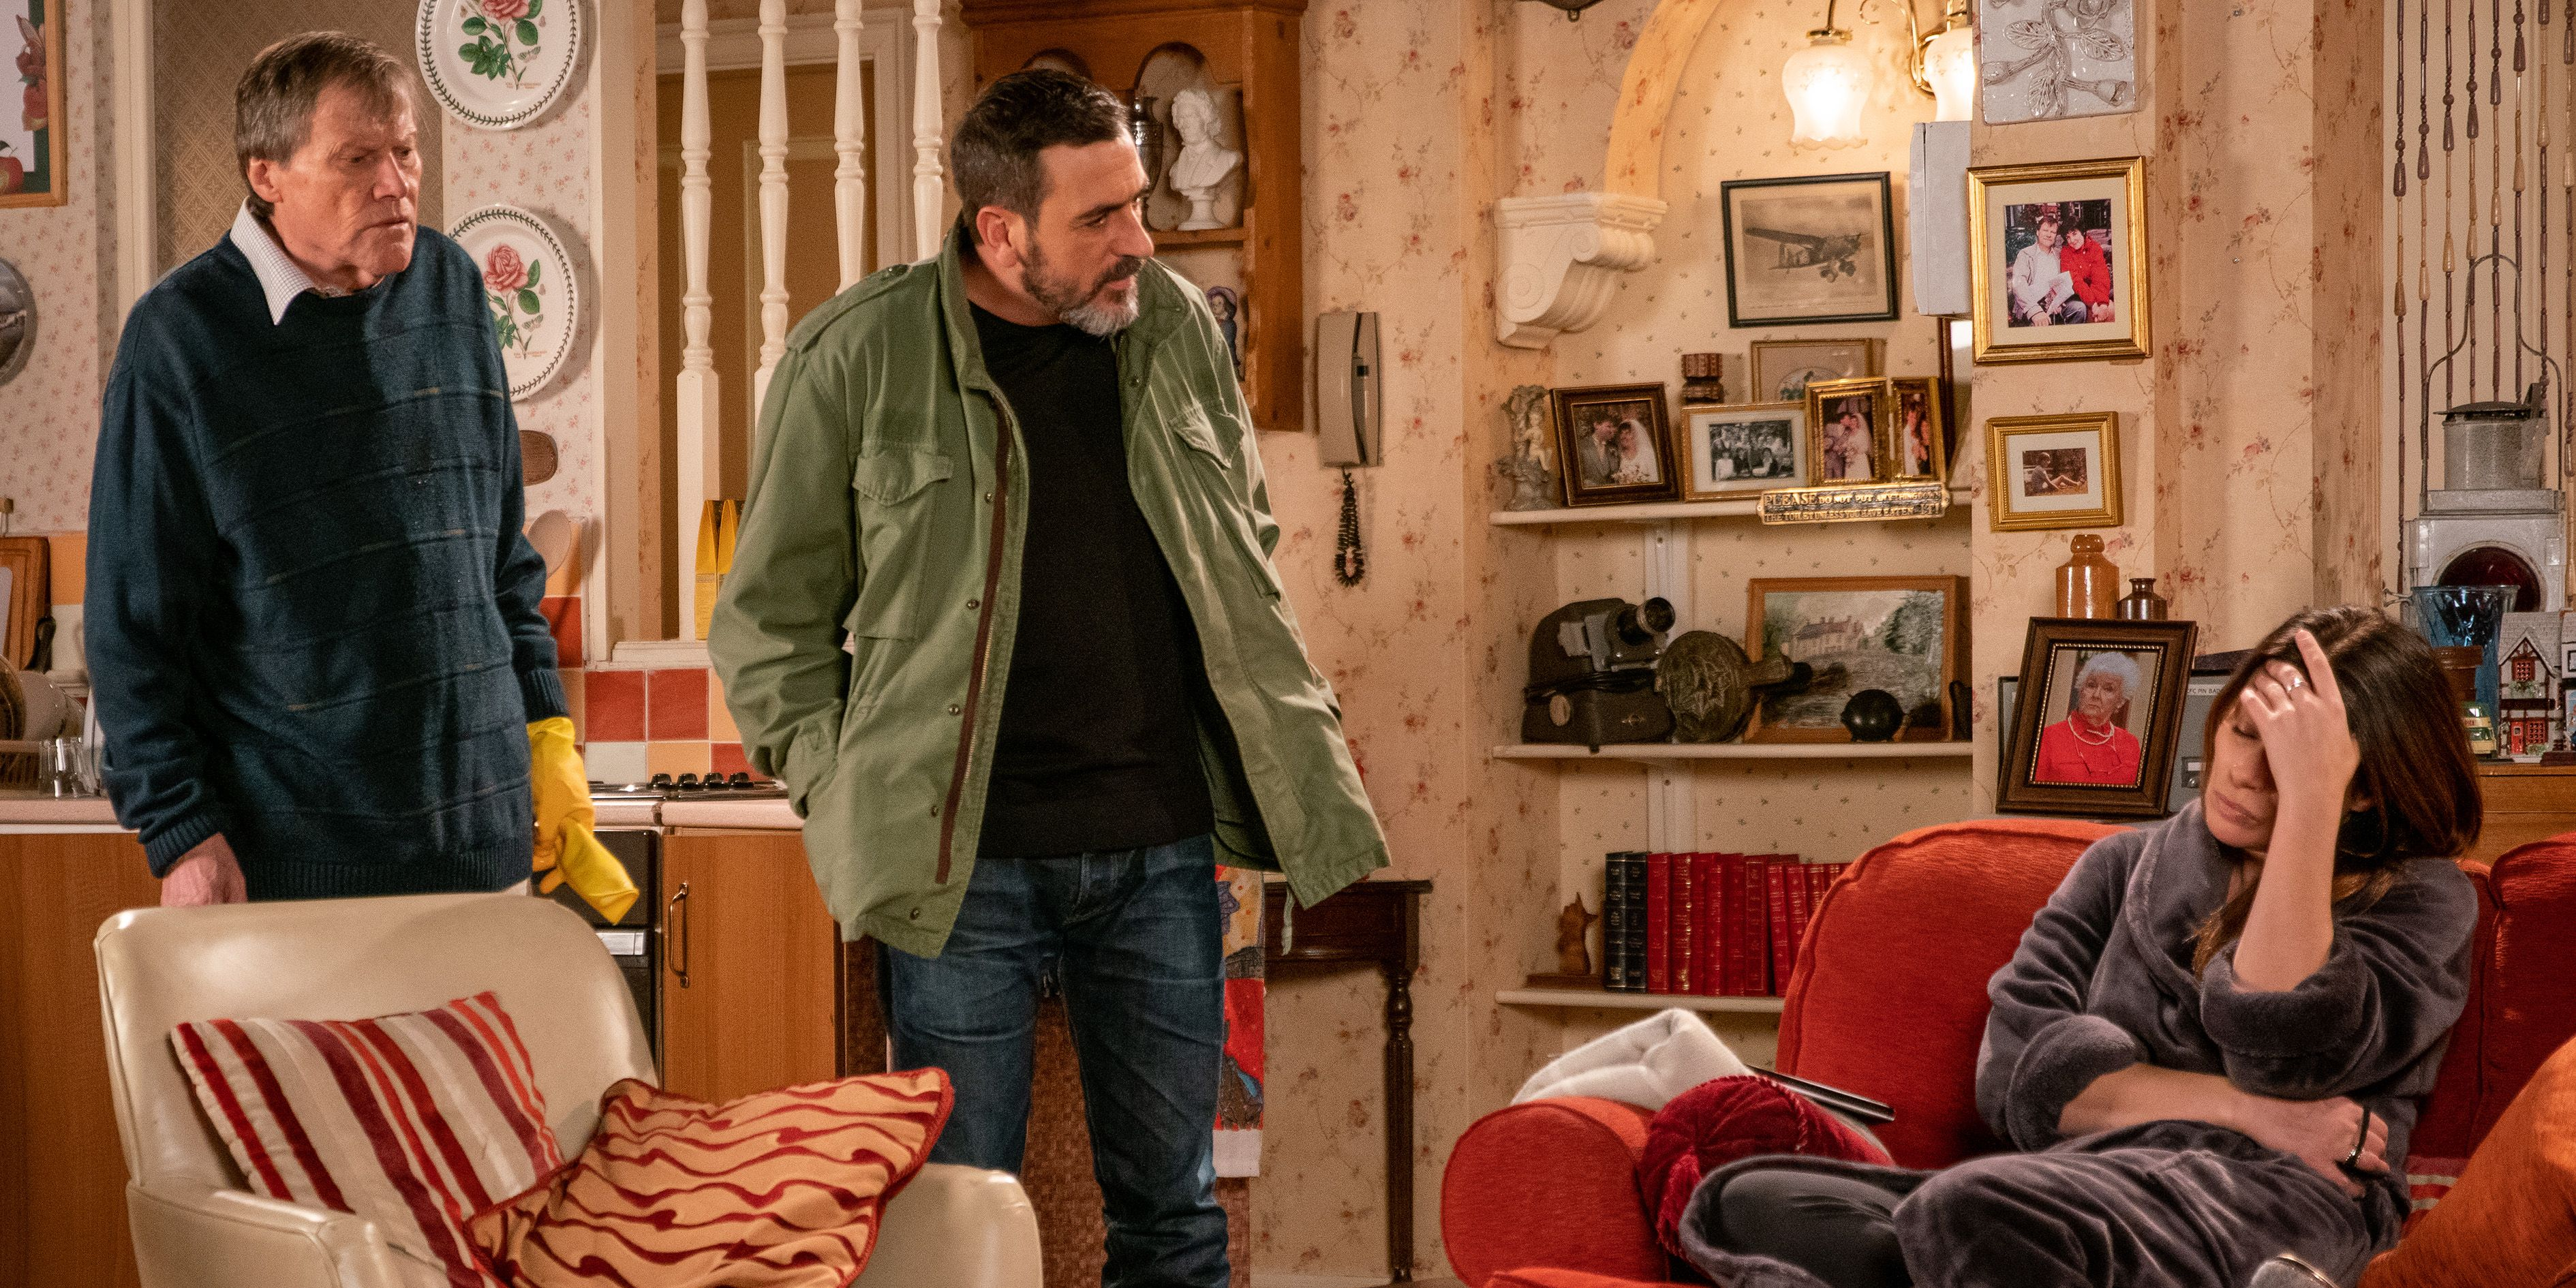 Peter Barlow confronts Carla Connor in Coronation Street